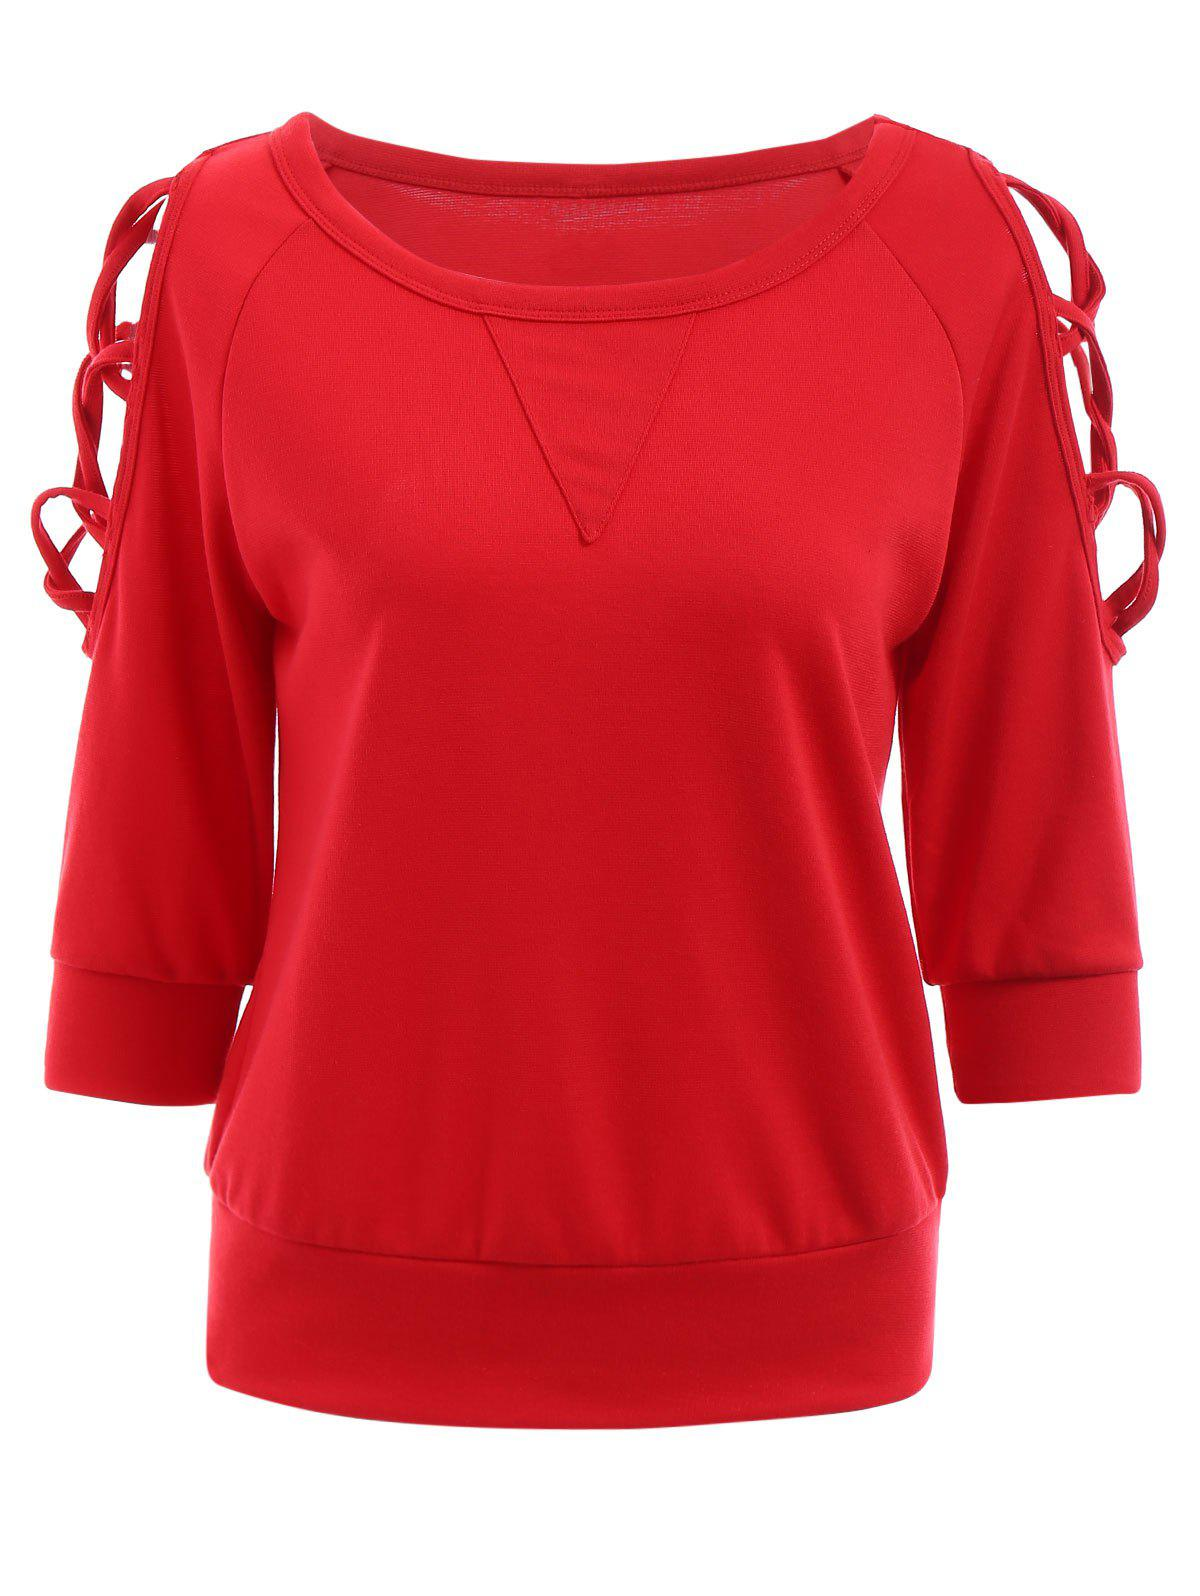 Mode col rond manches 3/4 Criss-Cross évider Sweatshirt Red For Women Rouge L